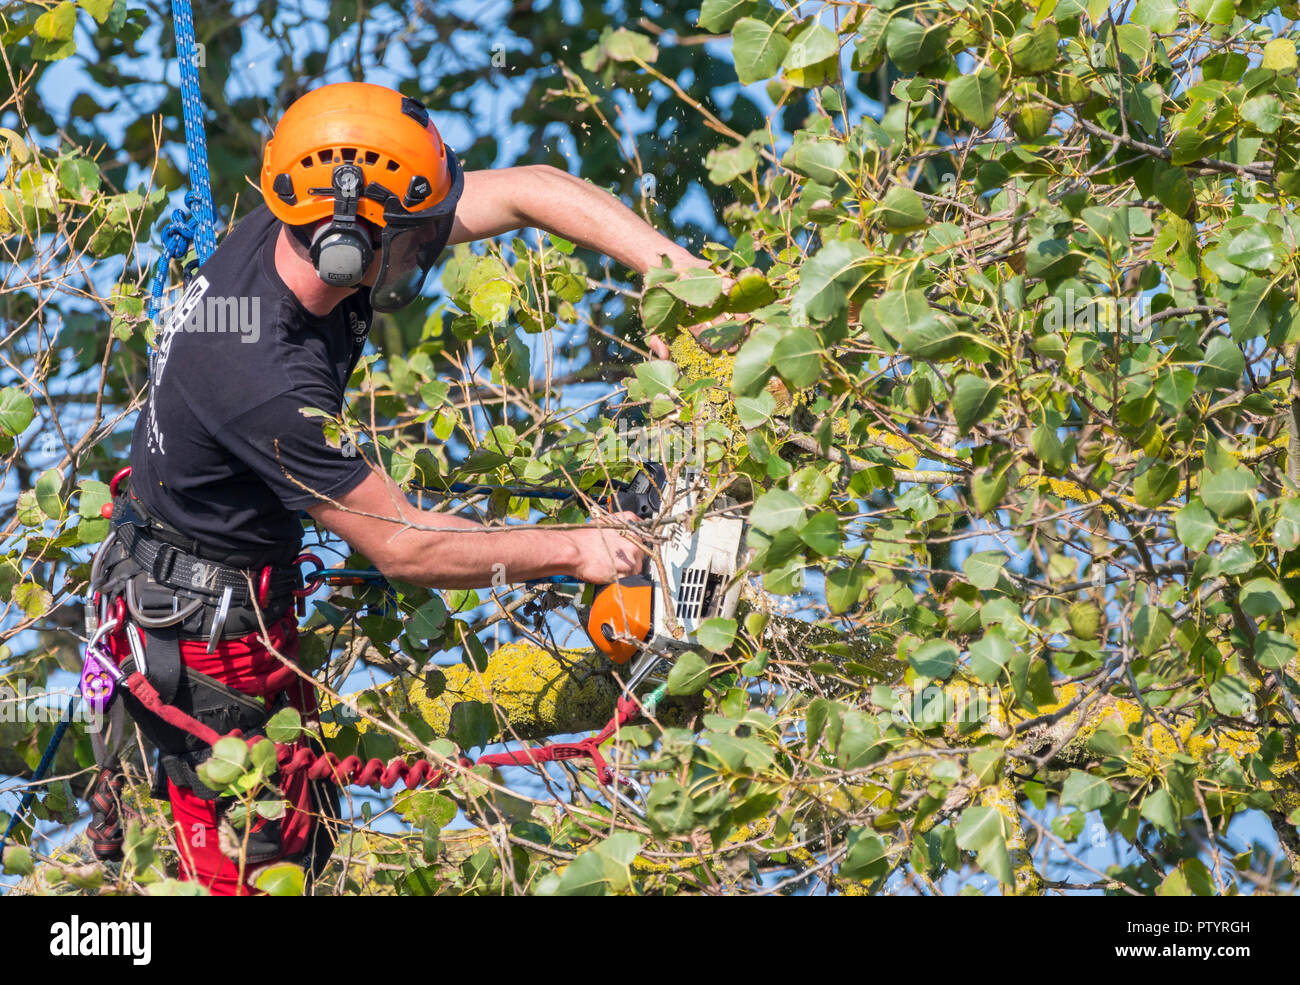 Tree surgeon in a tree in Autumn, secured by a rope, using a saw to trim a tree, in the UK. Tree surgery. Tree felling. Tree feller. - Stock Image